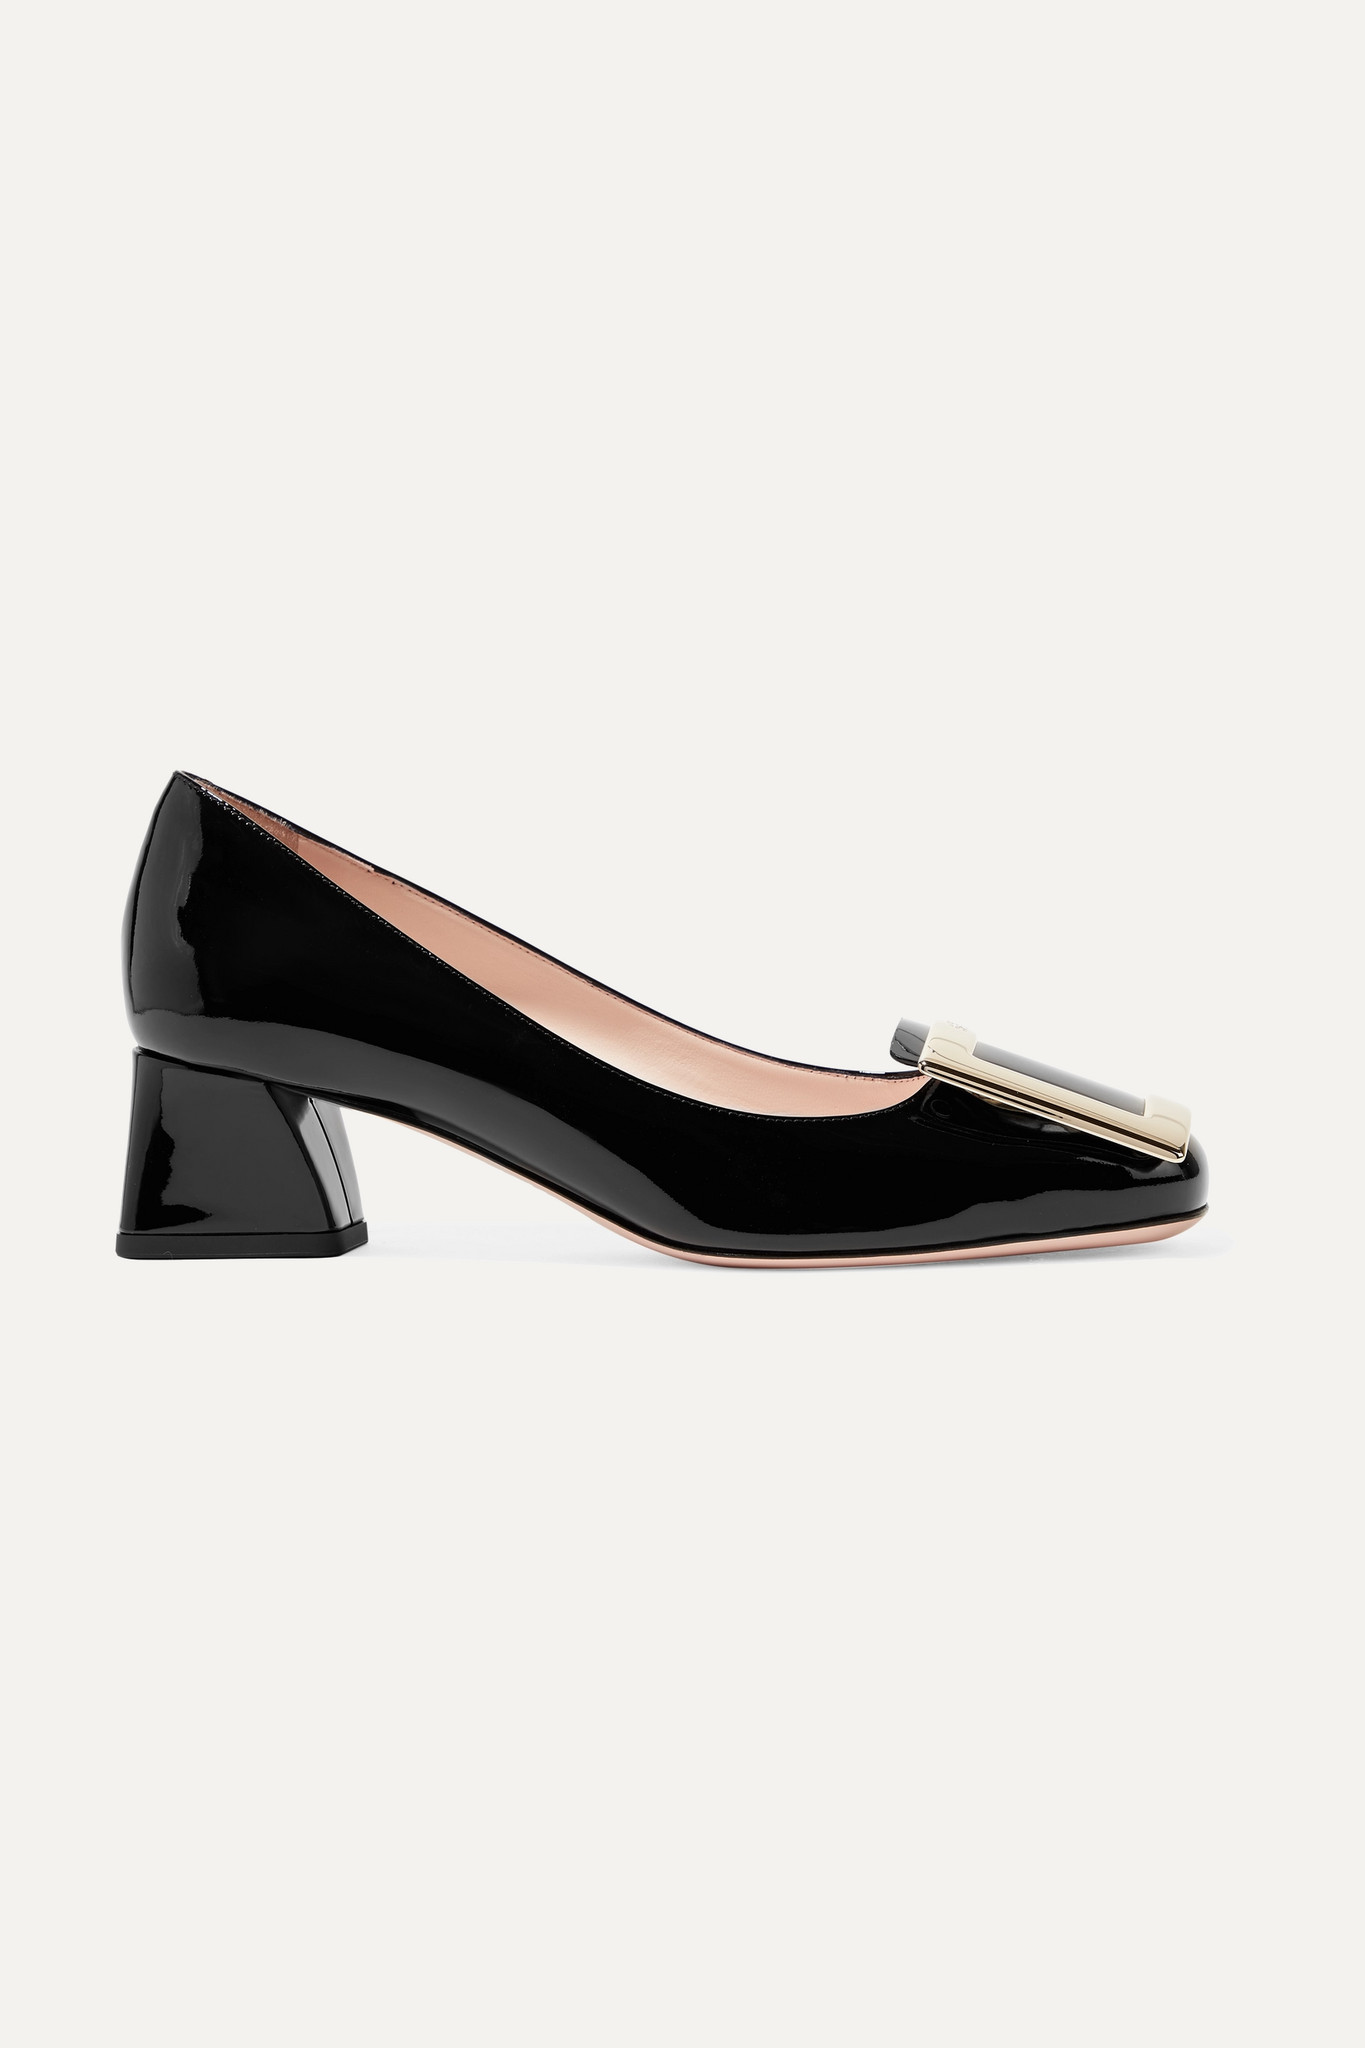 ROGER VIVIER - Belle De Jour Patent-leather Pumps - Black - IT35